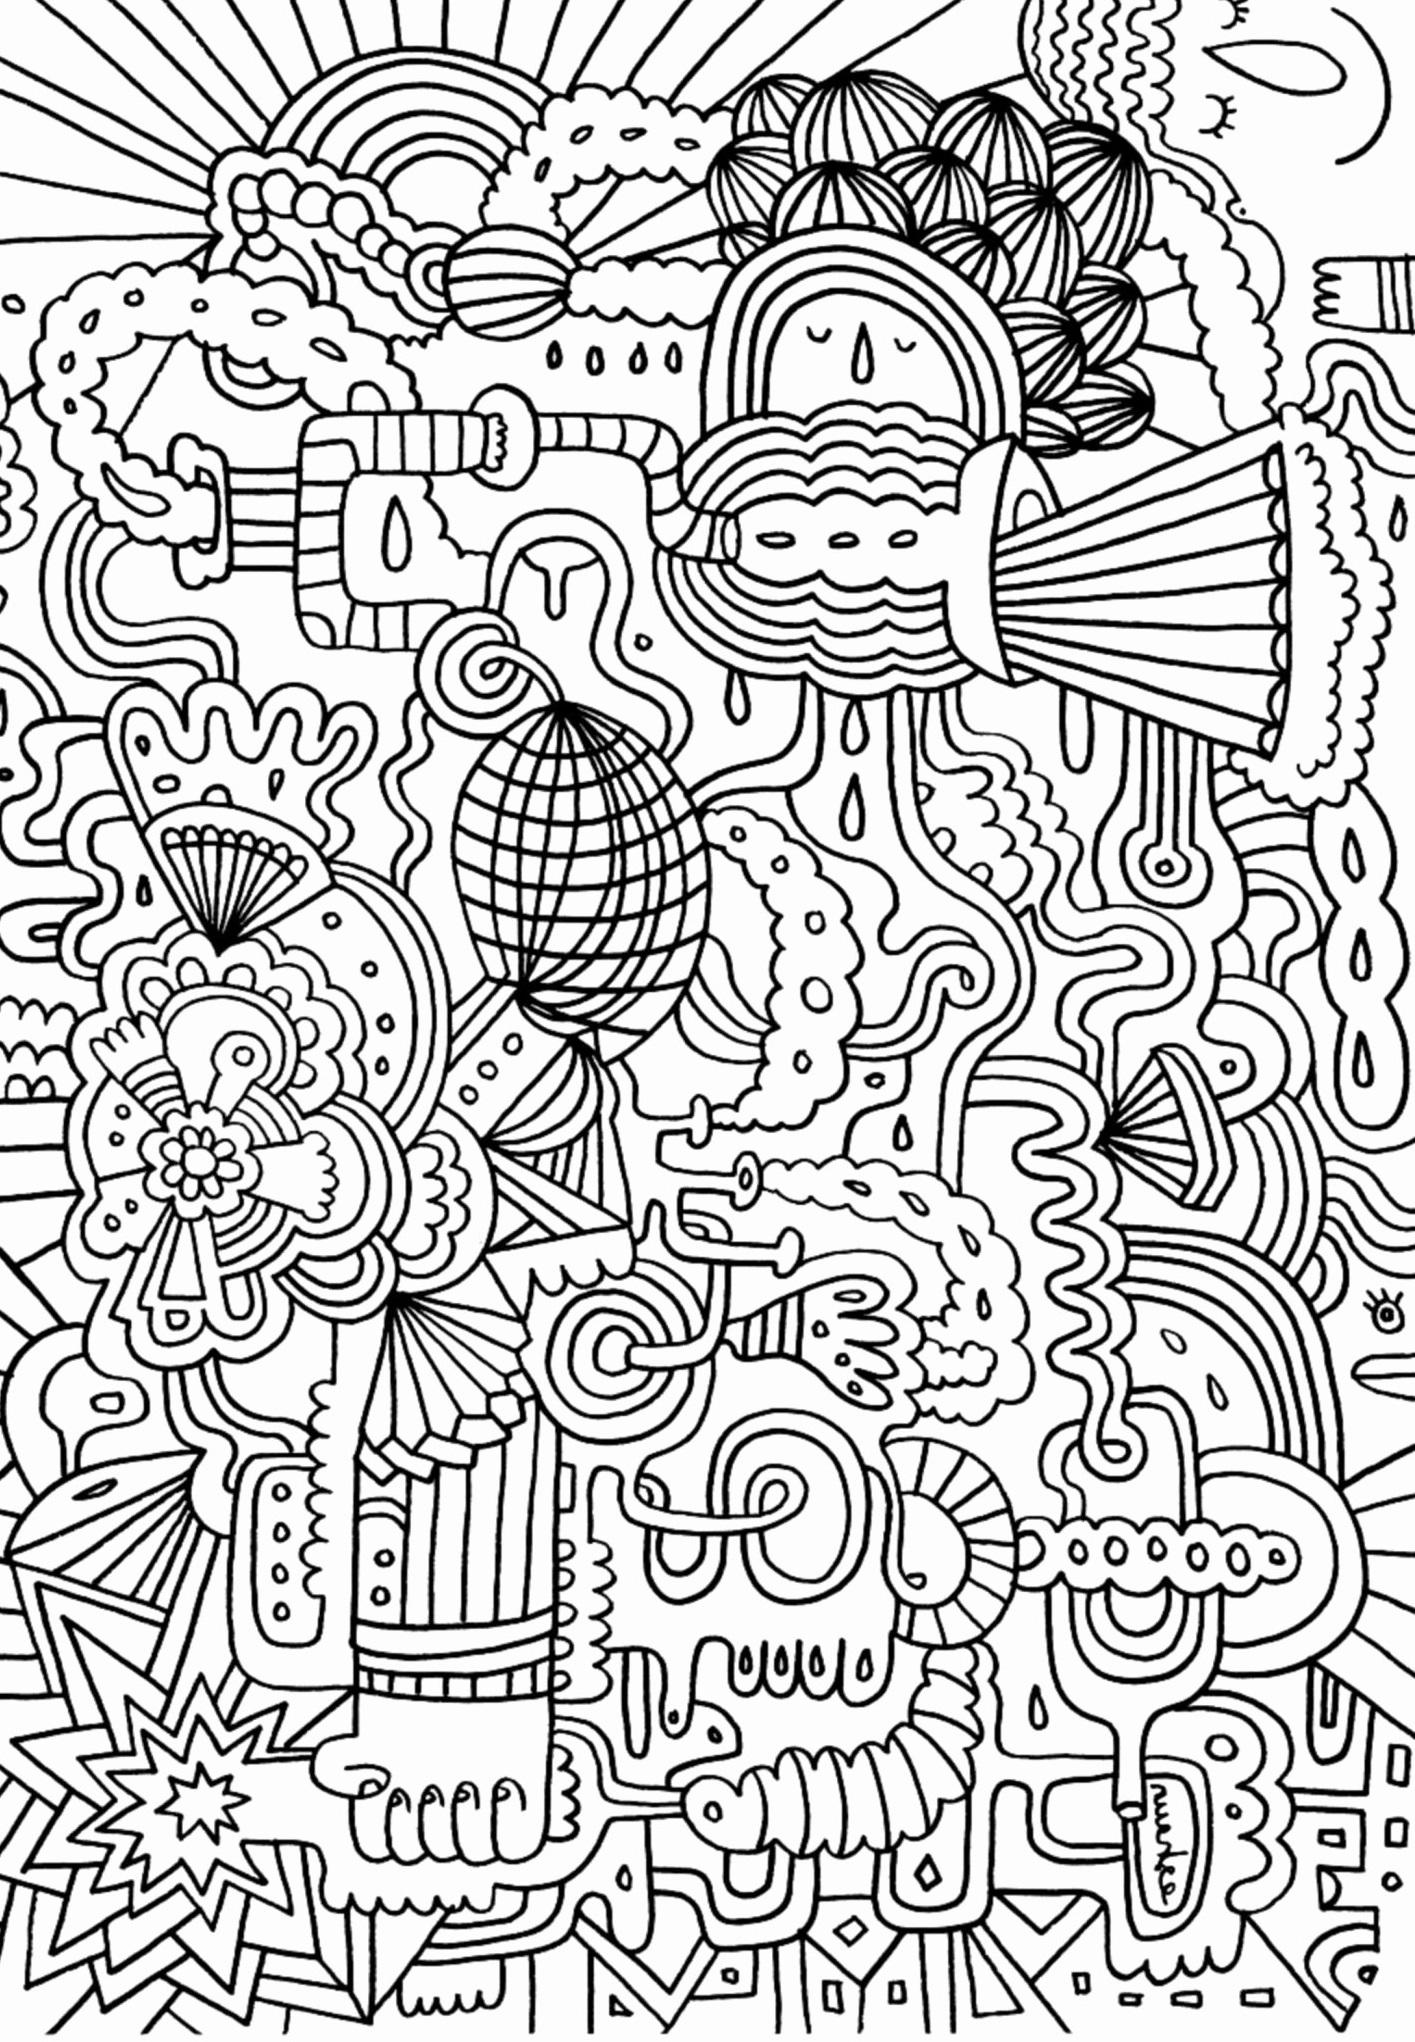 colouring in pages for teenagers quote coloring pages for adults and teens best coloring pages colouring for teenagers in